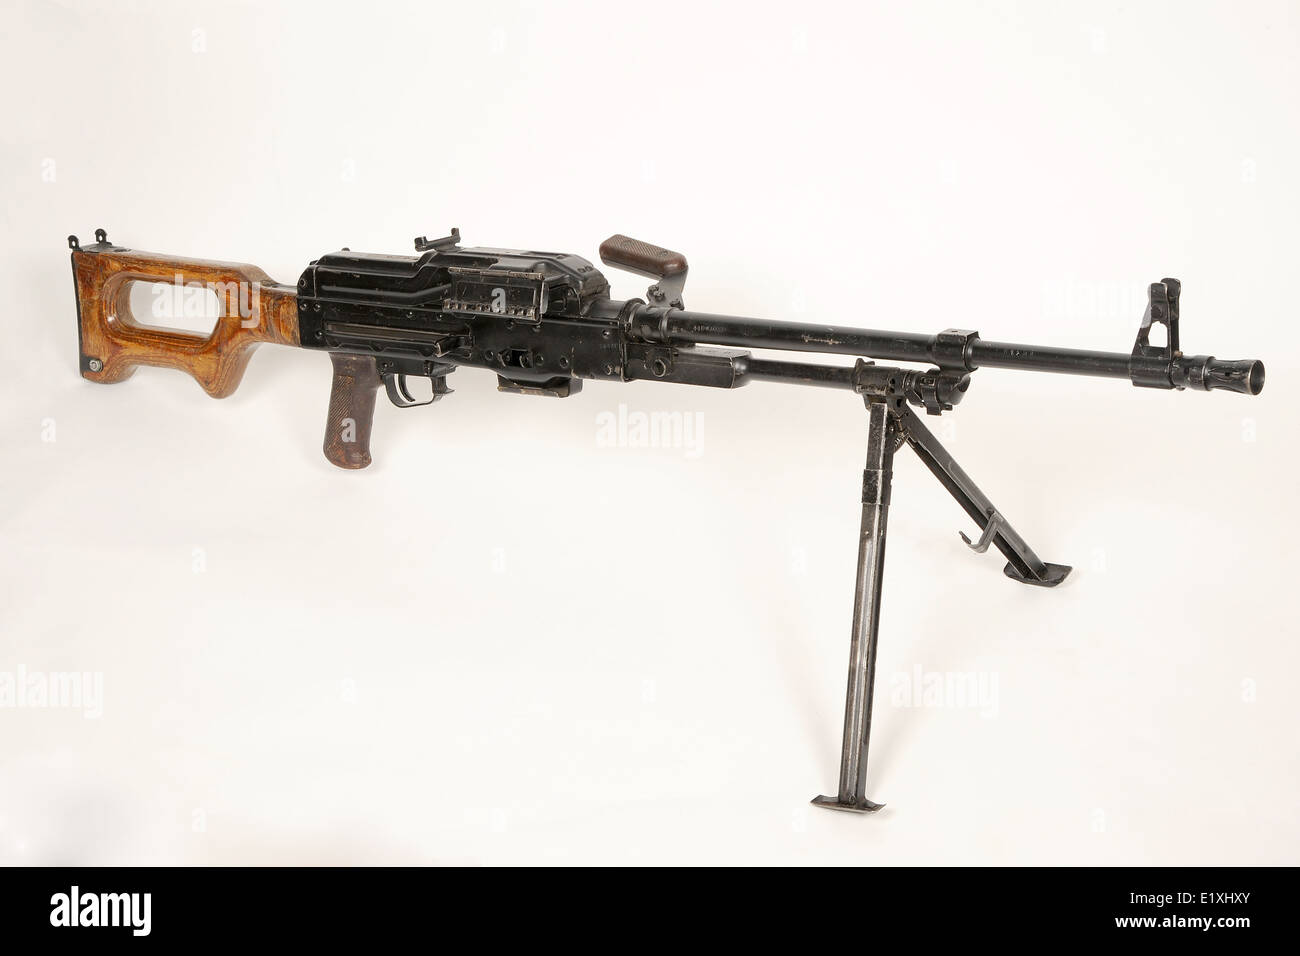 PKM 7.62 mm general-purpose machine gun - Stock Image